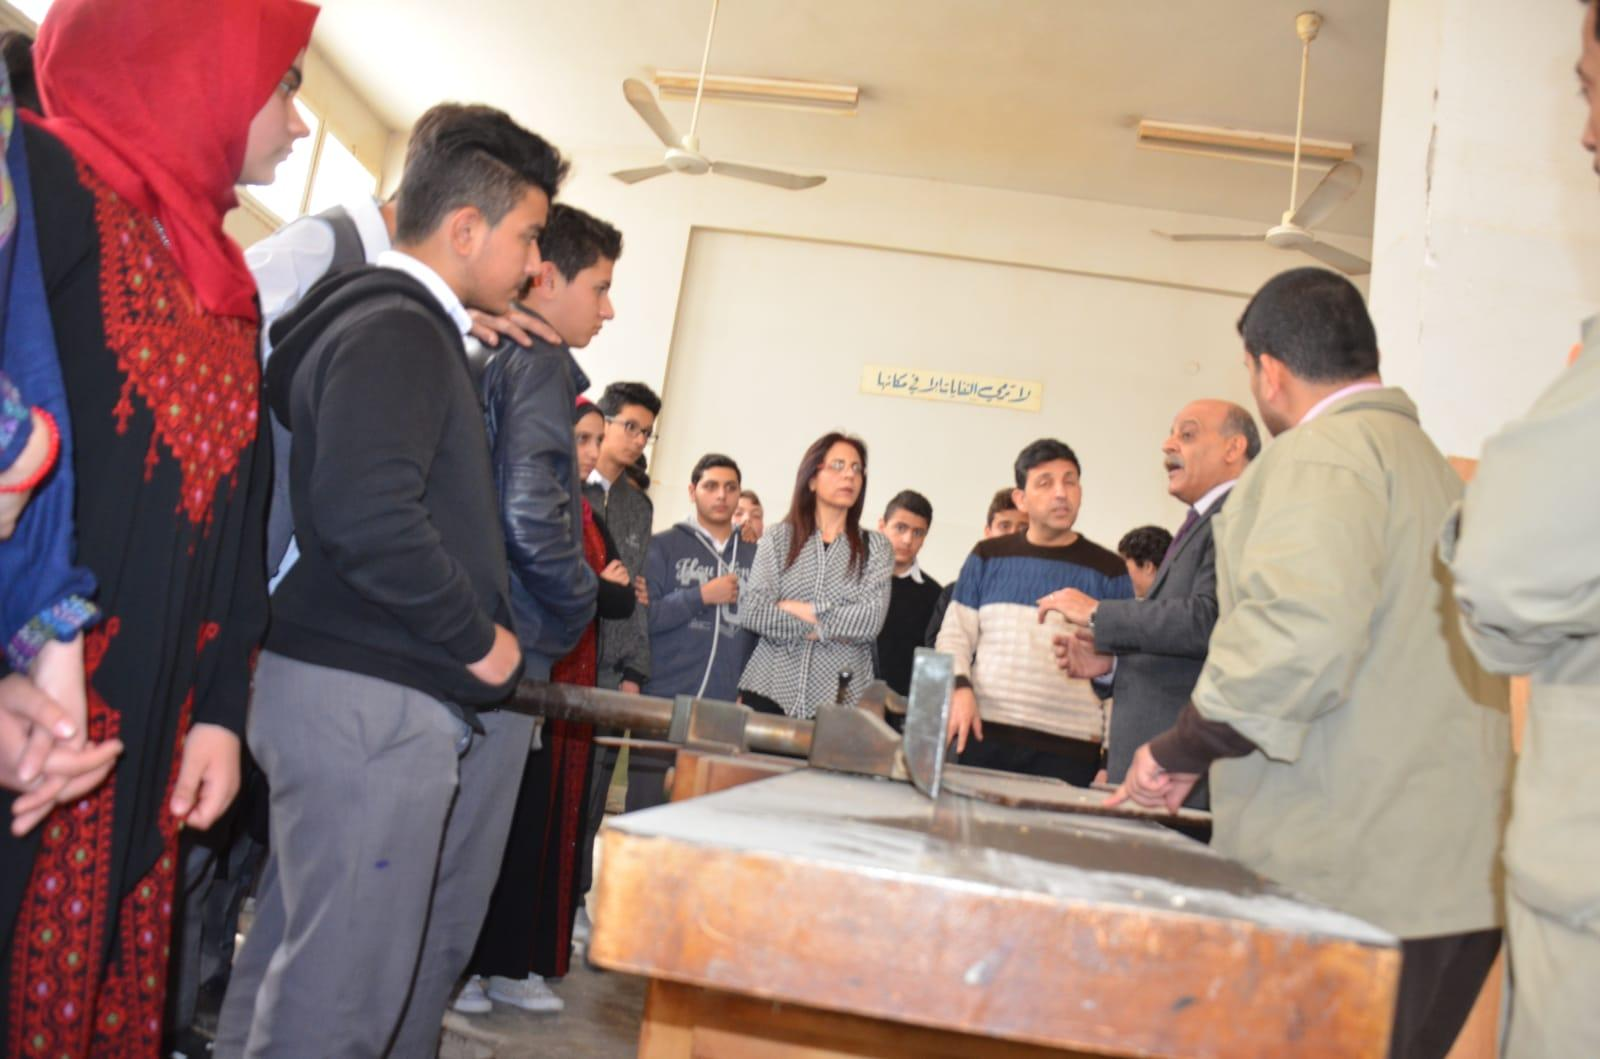 Gaza - The Holy Family: A visit to the vocational training center